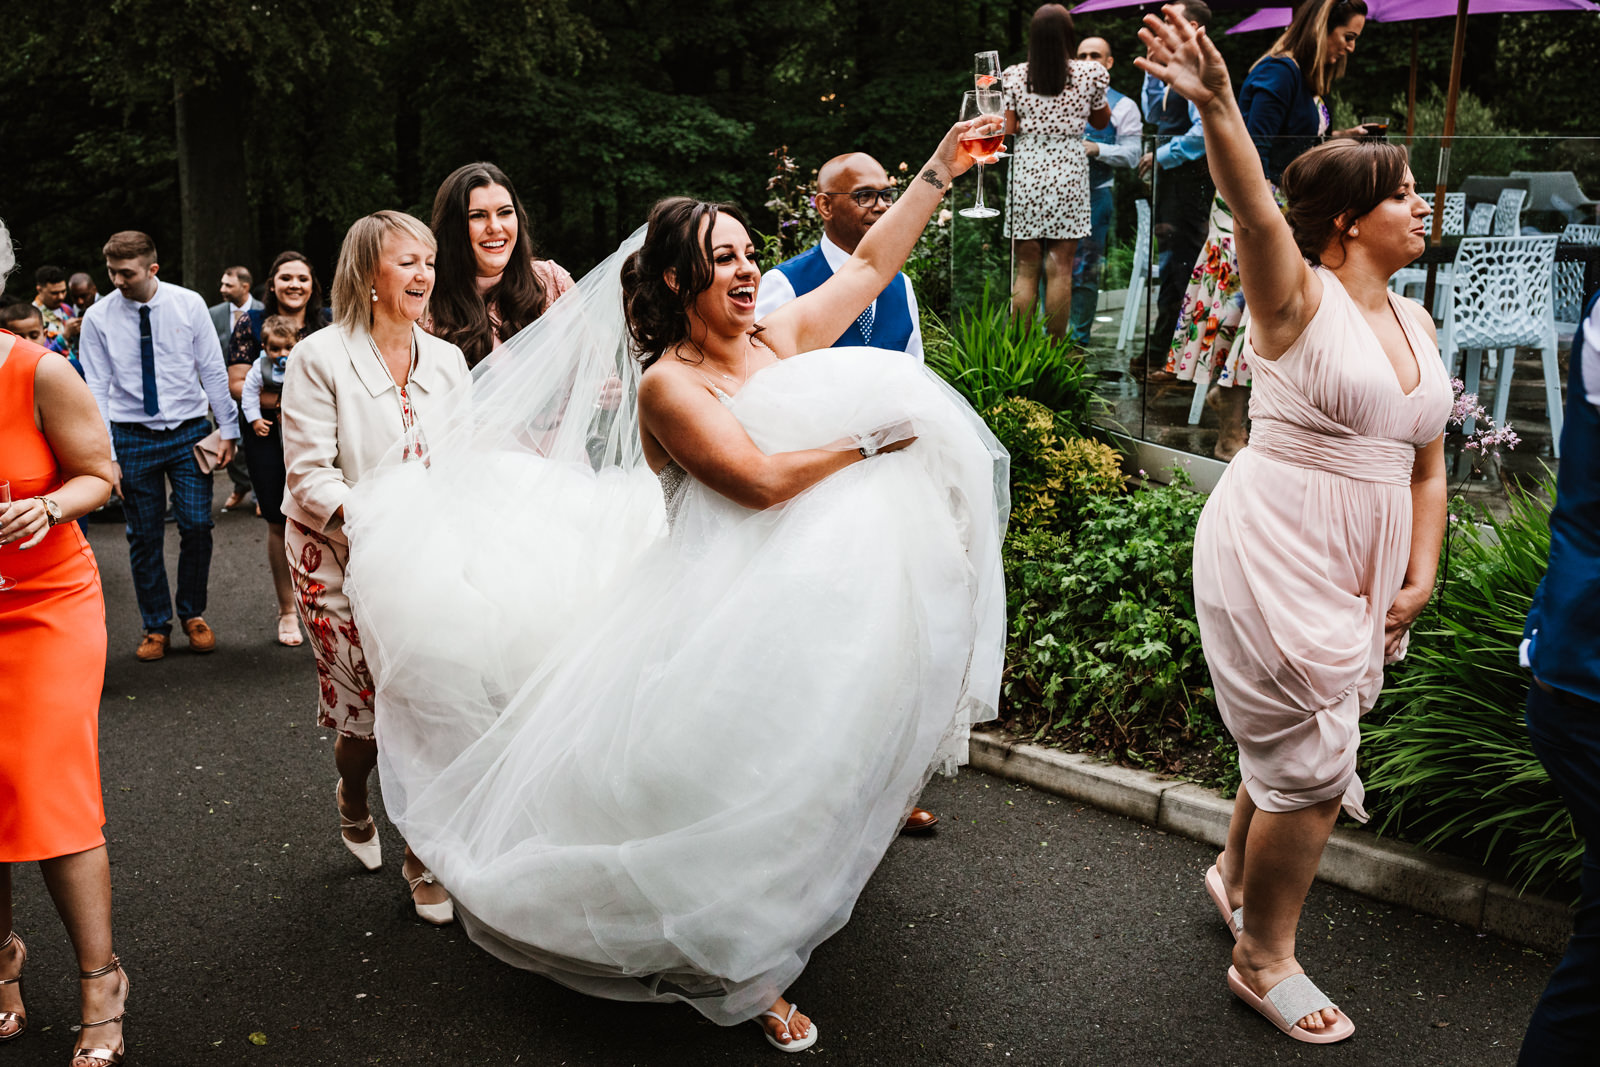 Bride walking back into the venue with her squad